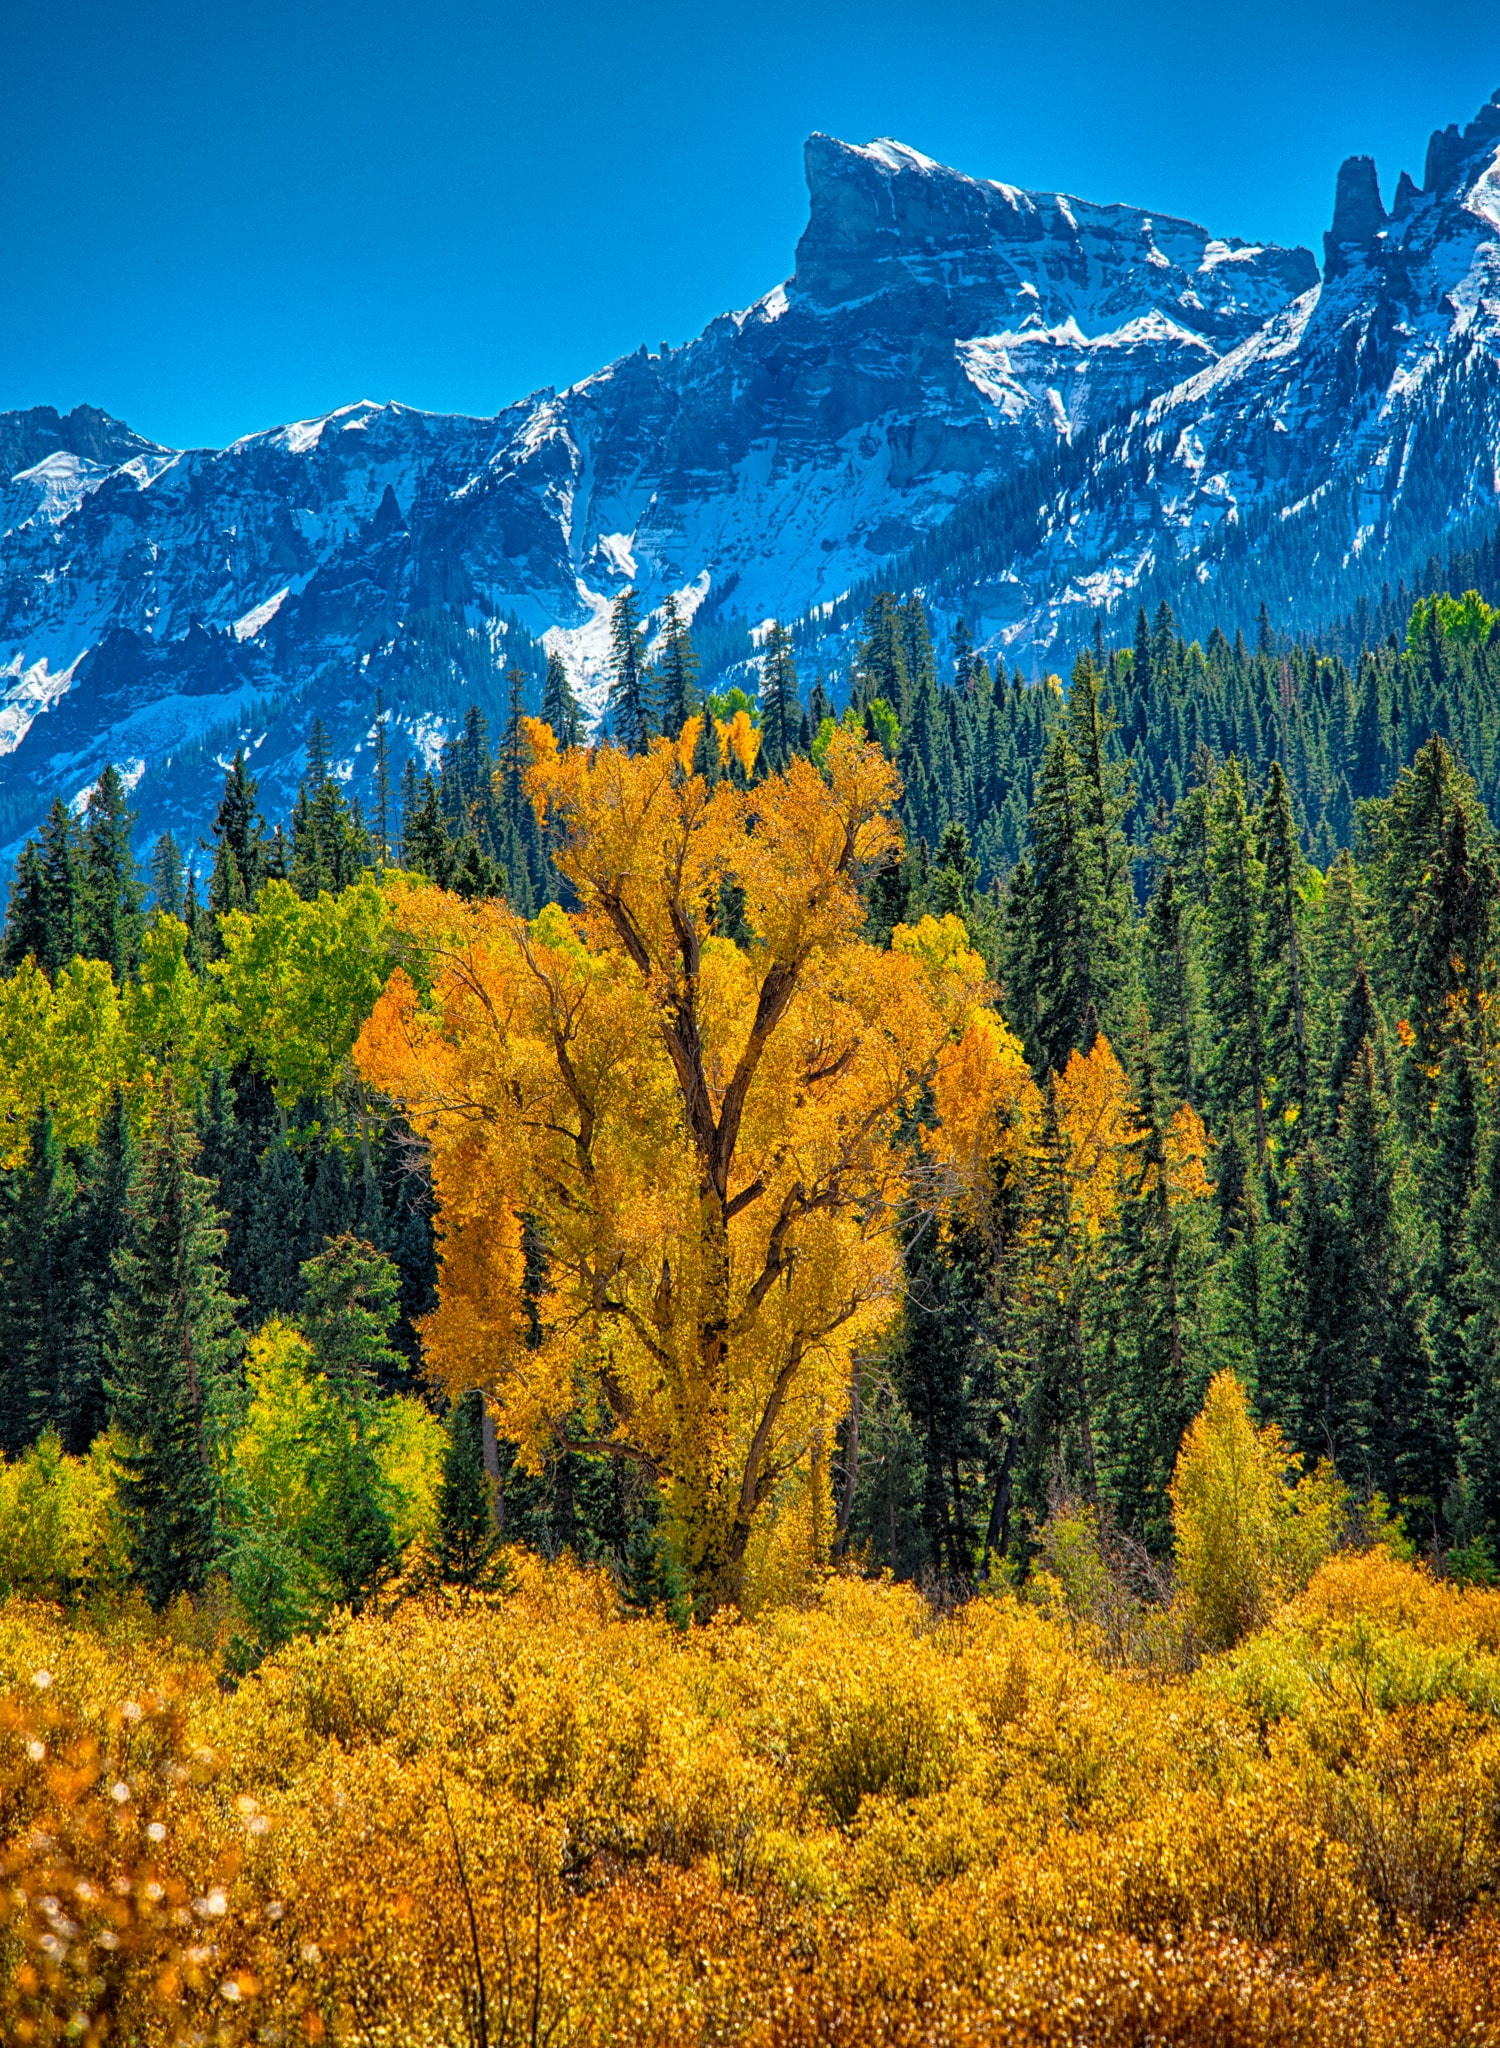 A brilliant yellow narrow-leaf cottonwood stands along the East Fork of the Cimarron River with snowy mountains in the distance, as seen from Forest Road 858 near Silver Jack Reservoir.